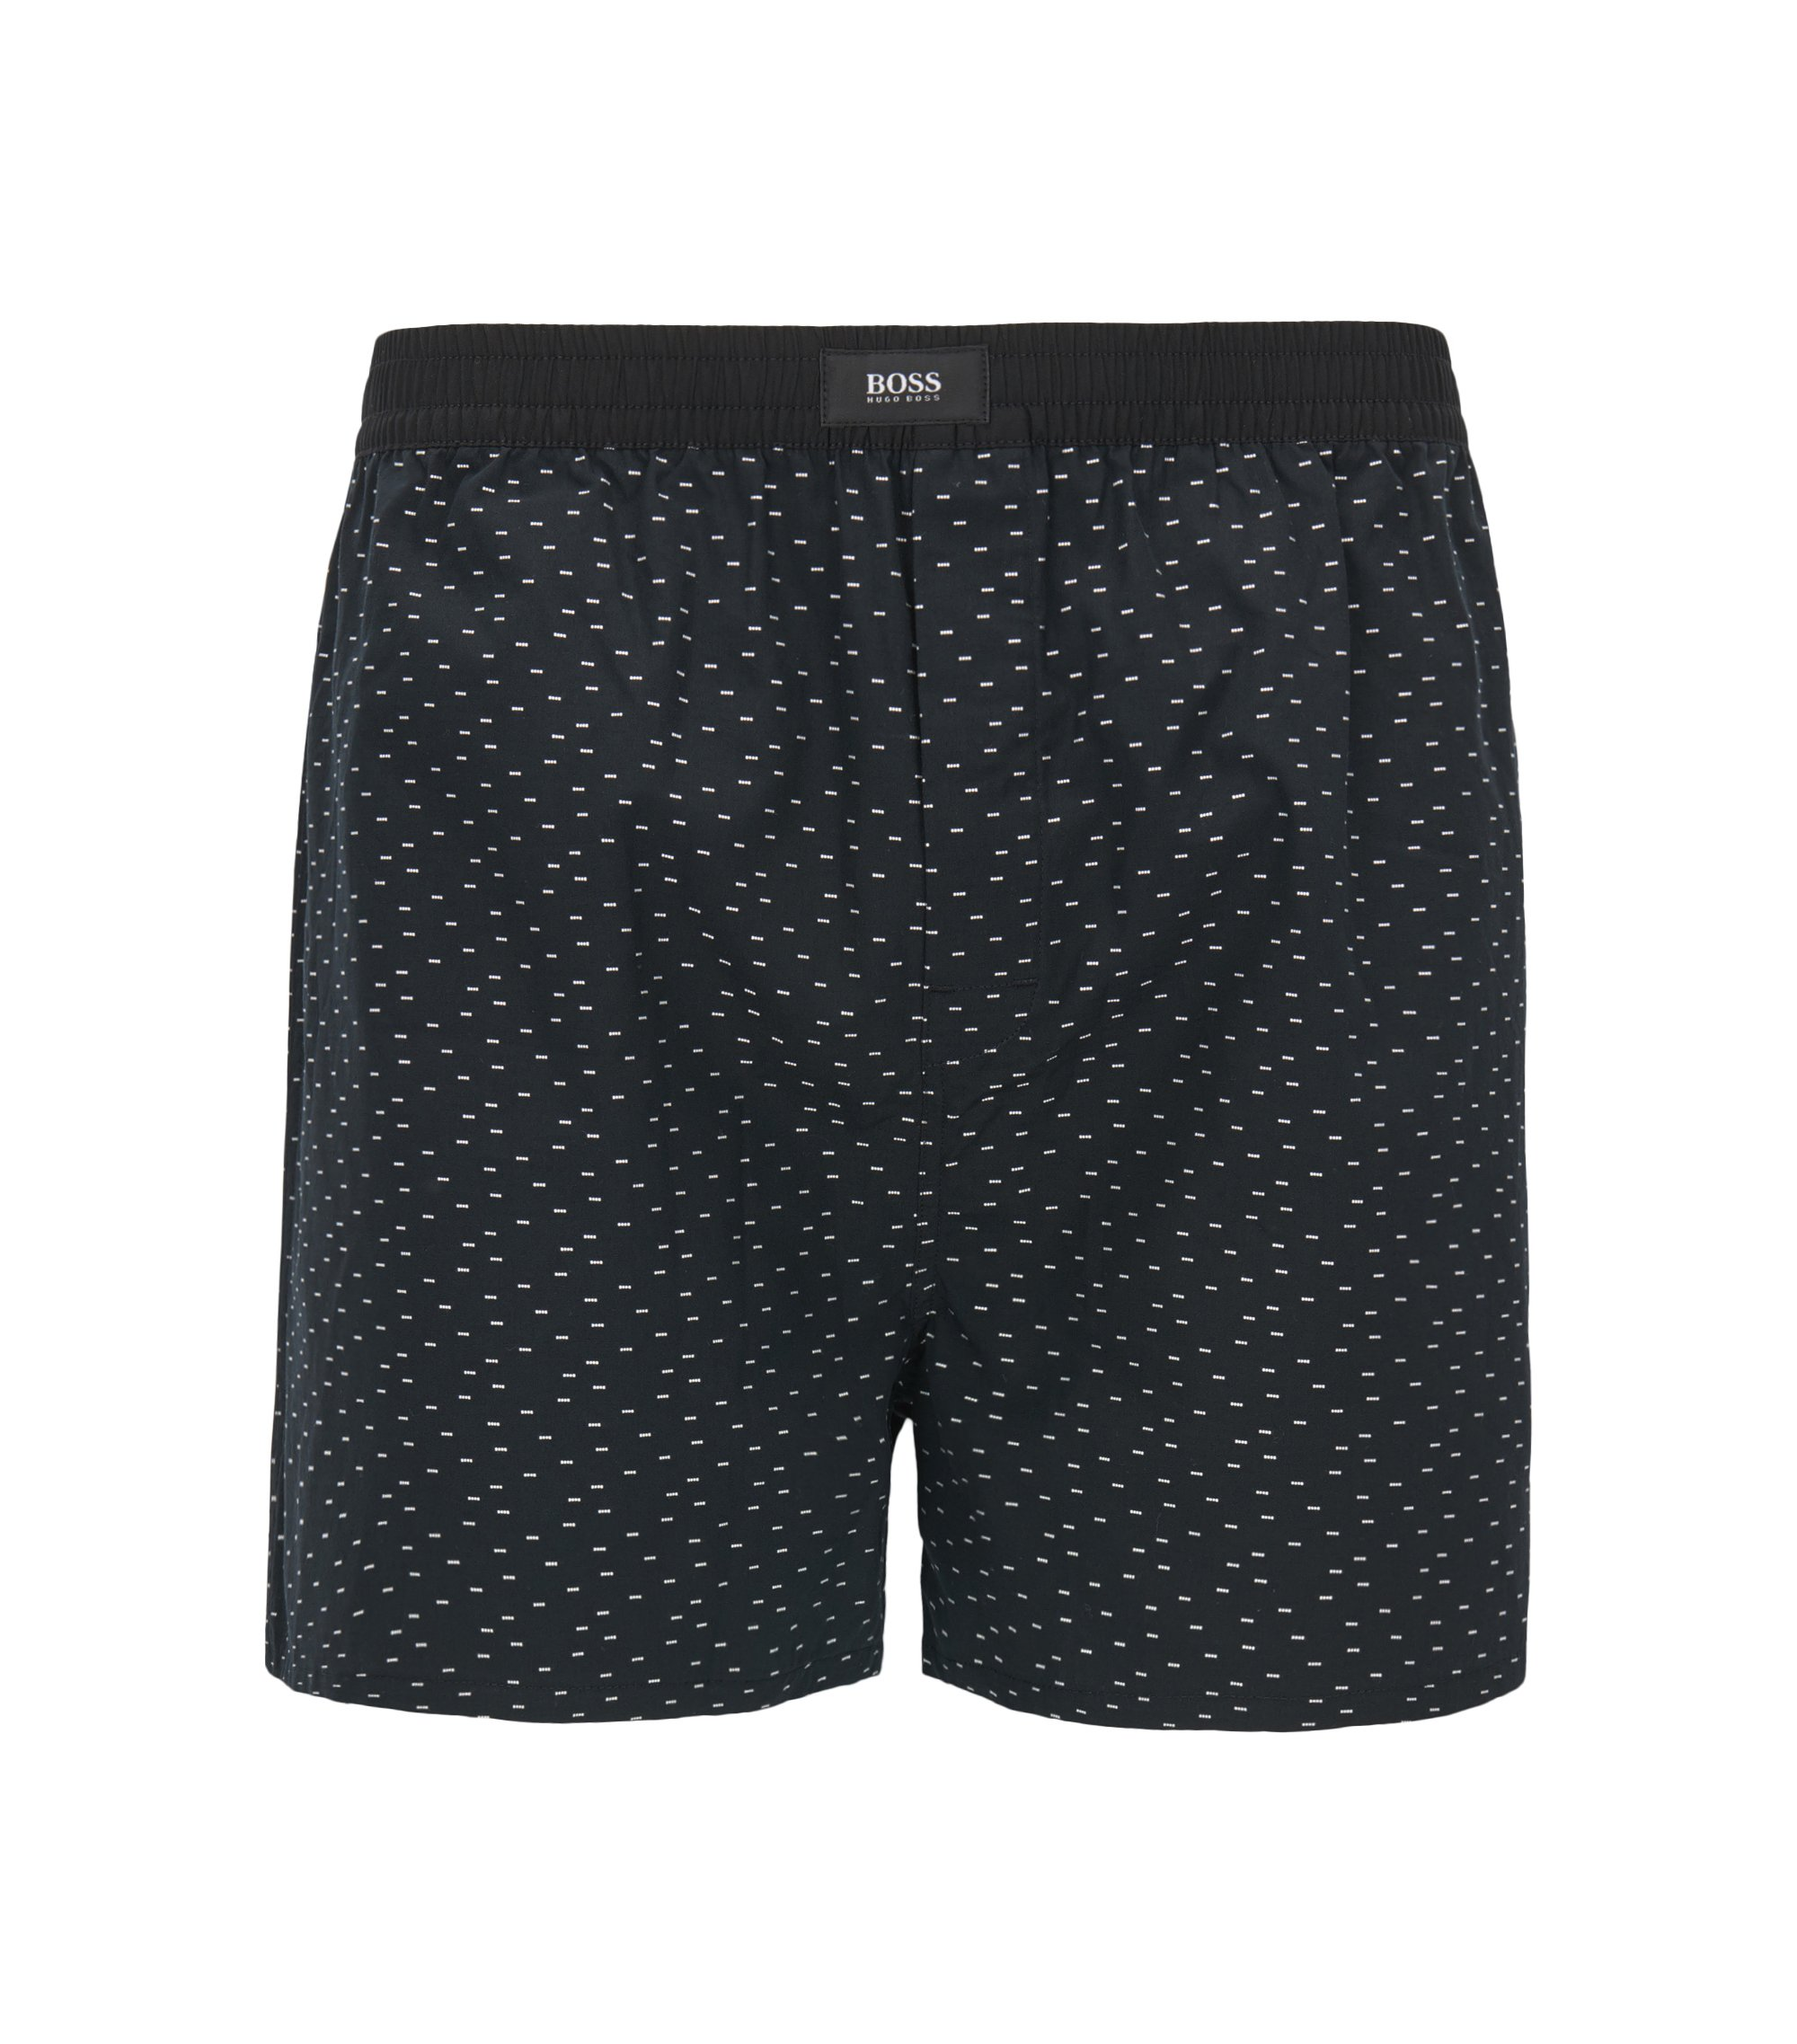 Cotton pyjama shorts with fil coupé pattern, Black